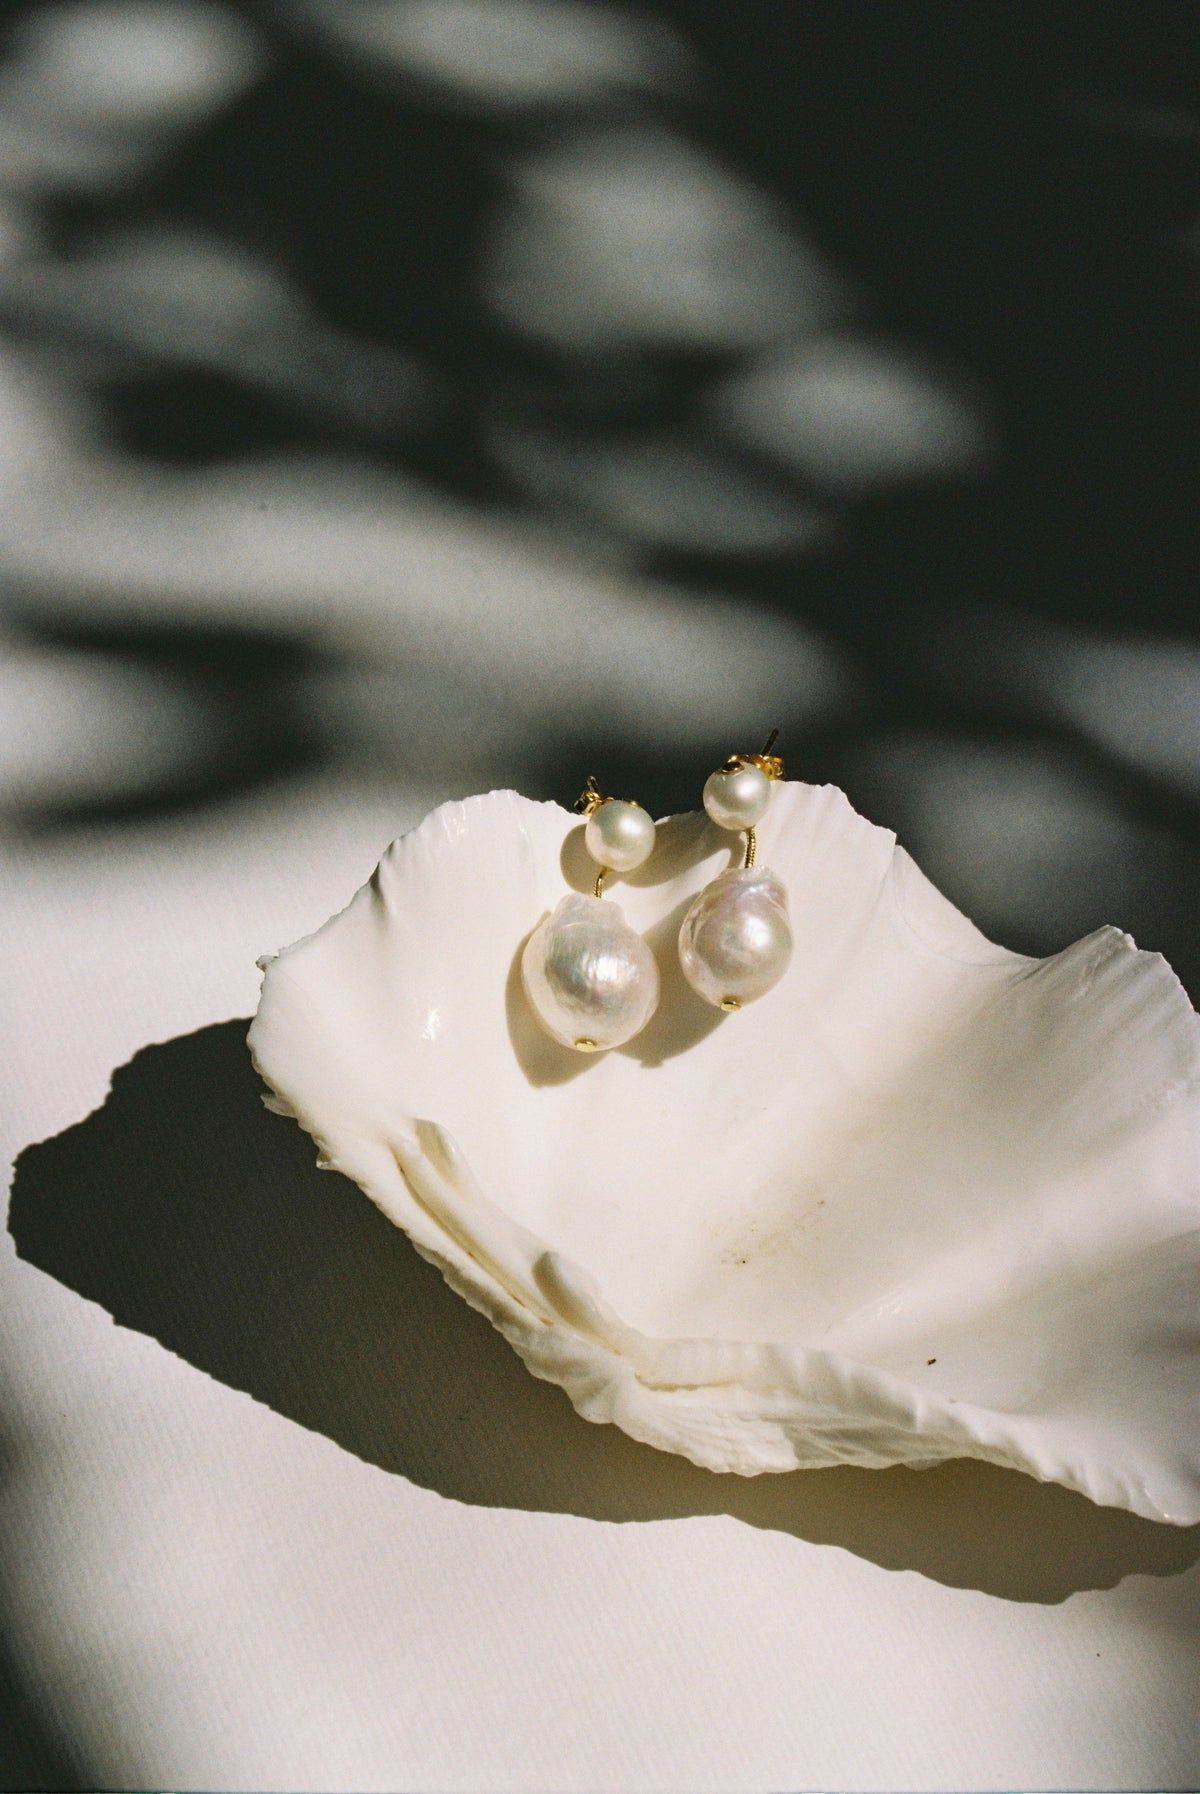 Pia Pearl earrings in gold on white background by Jasmin Sparrow. Makers Market Melbourne